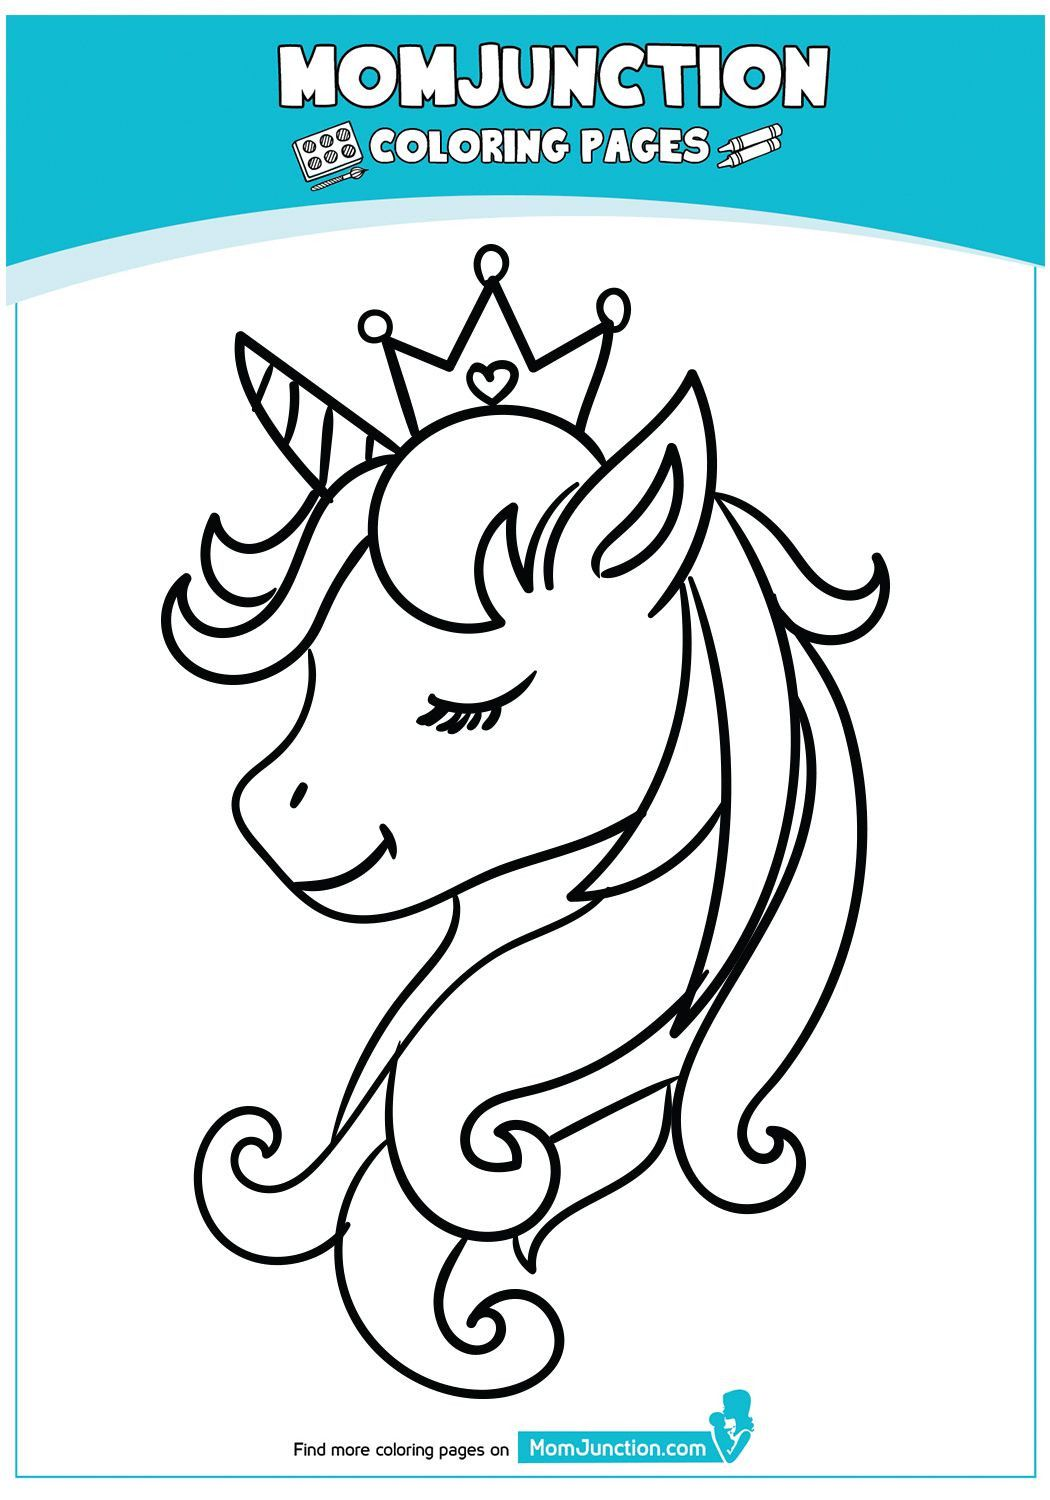 Unicorn Head Coloring Page Youngandtae Com In 2020 Unicorn Coloring Pages Coloring Pages Disney Coloring Pages